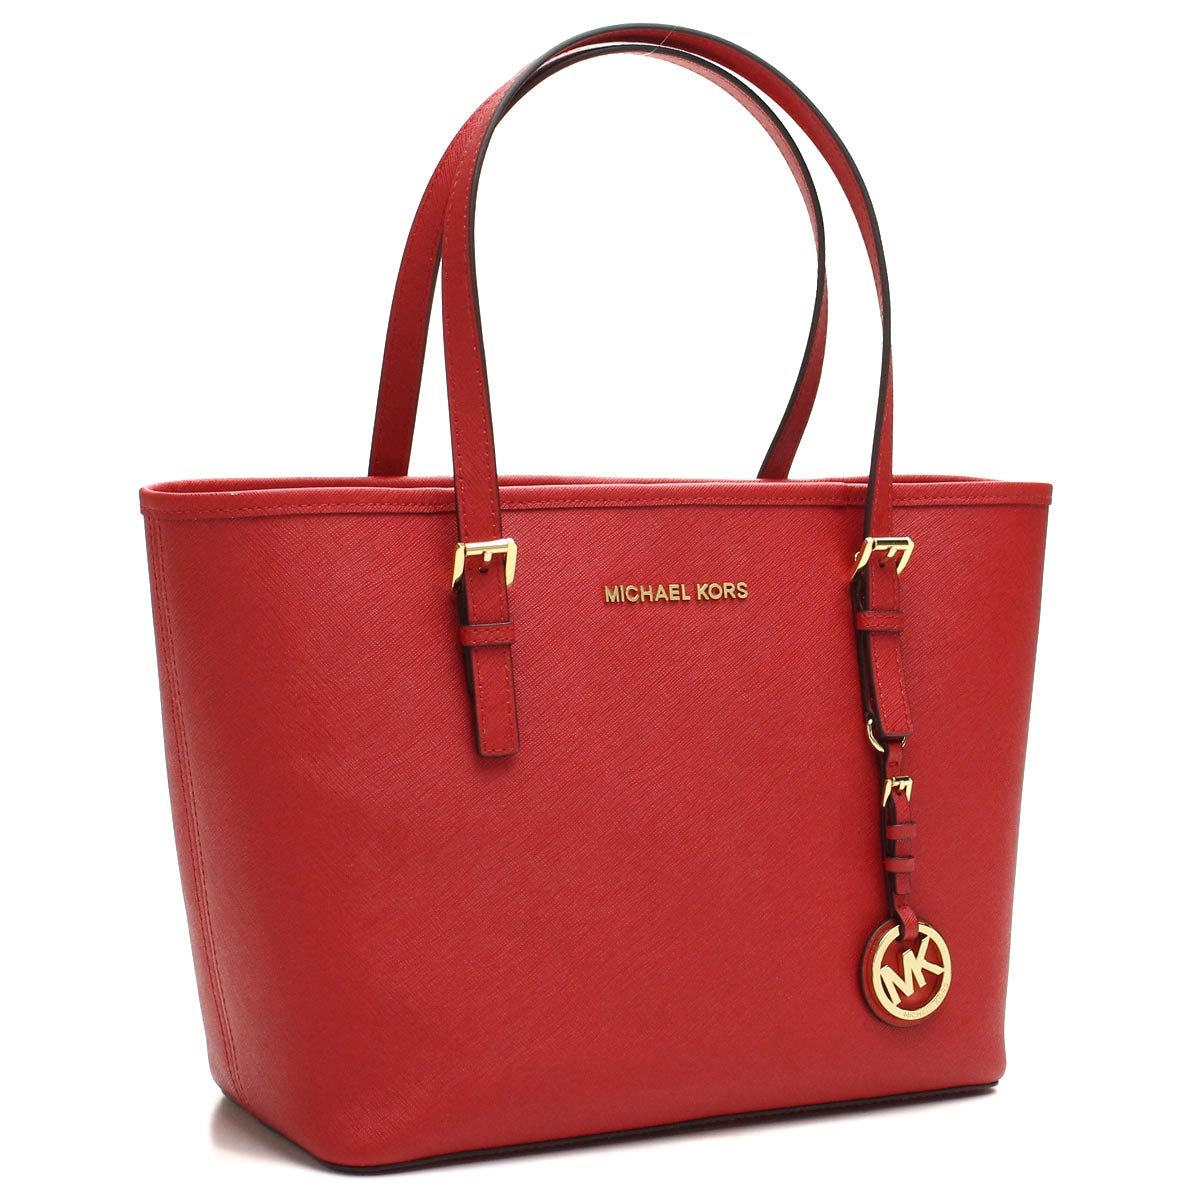 Michael Kors (MICHAEL KORS) JET SET tote bag 30H1GTVT1L CHILI red series( taxfree/send by EMS/authentic/A brand new item )